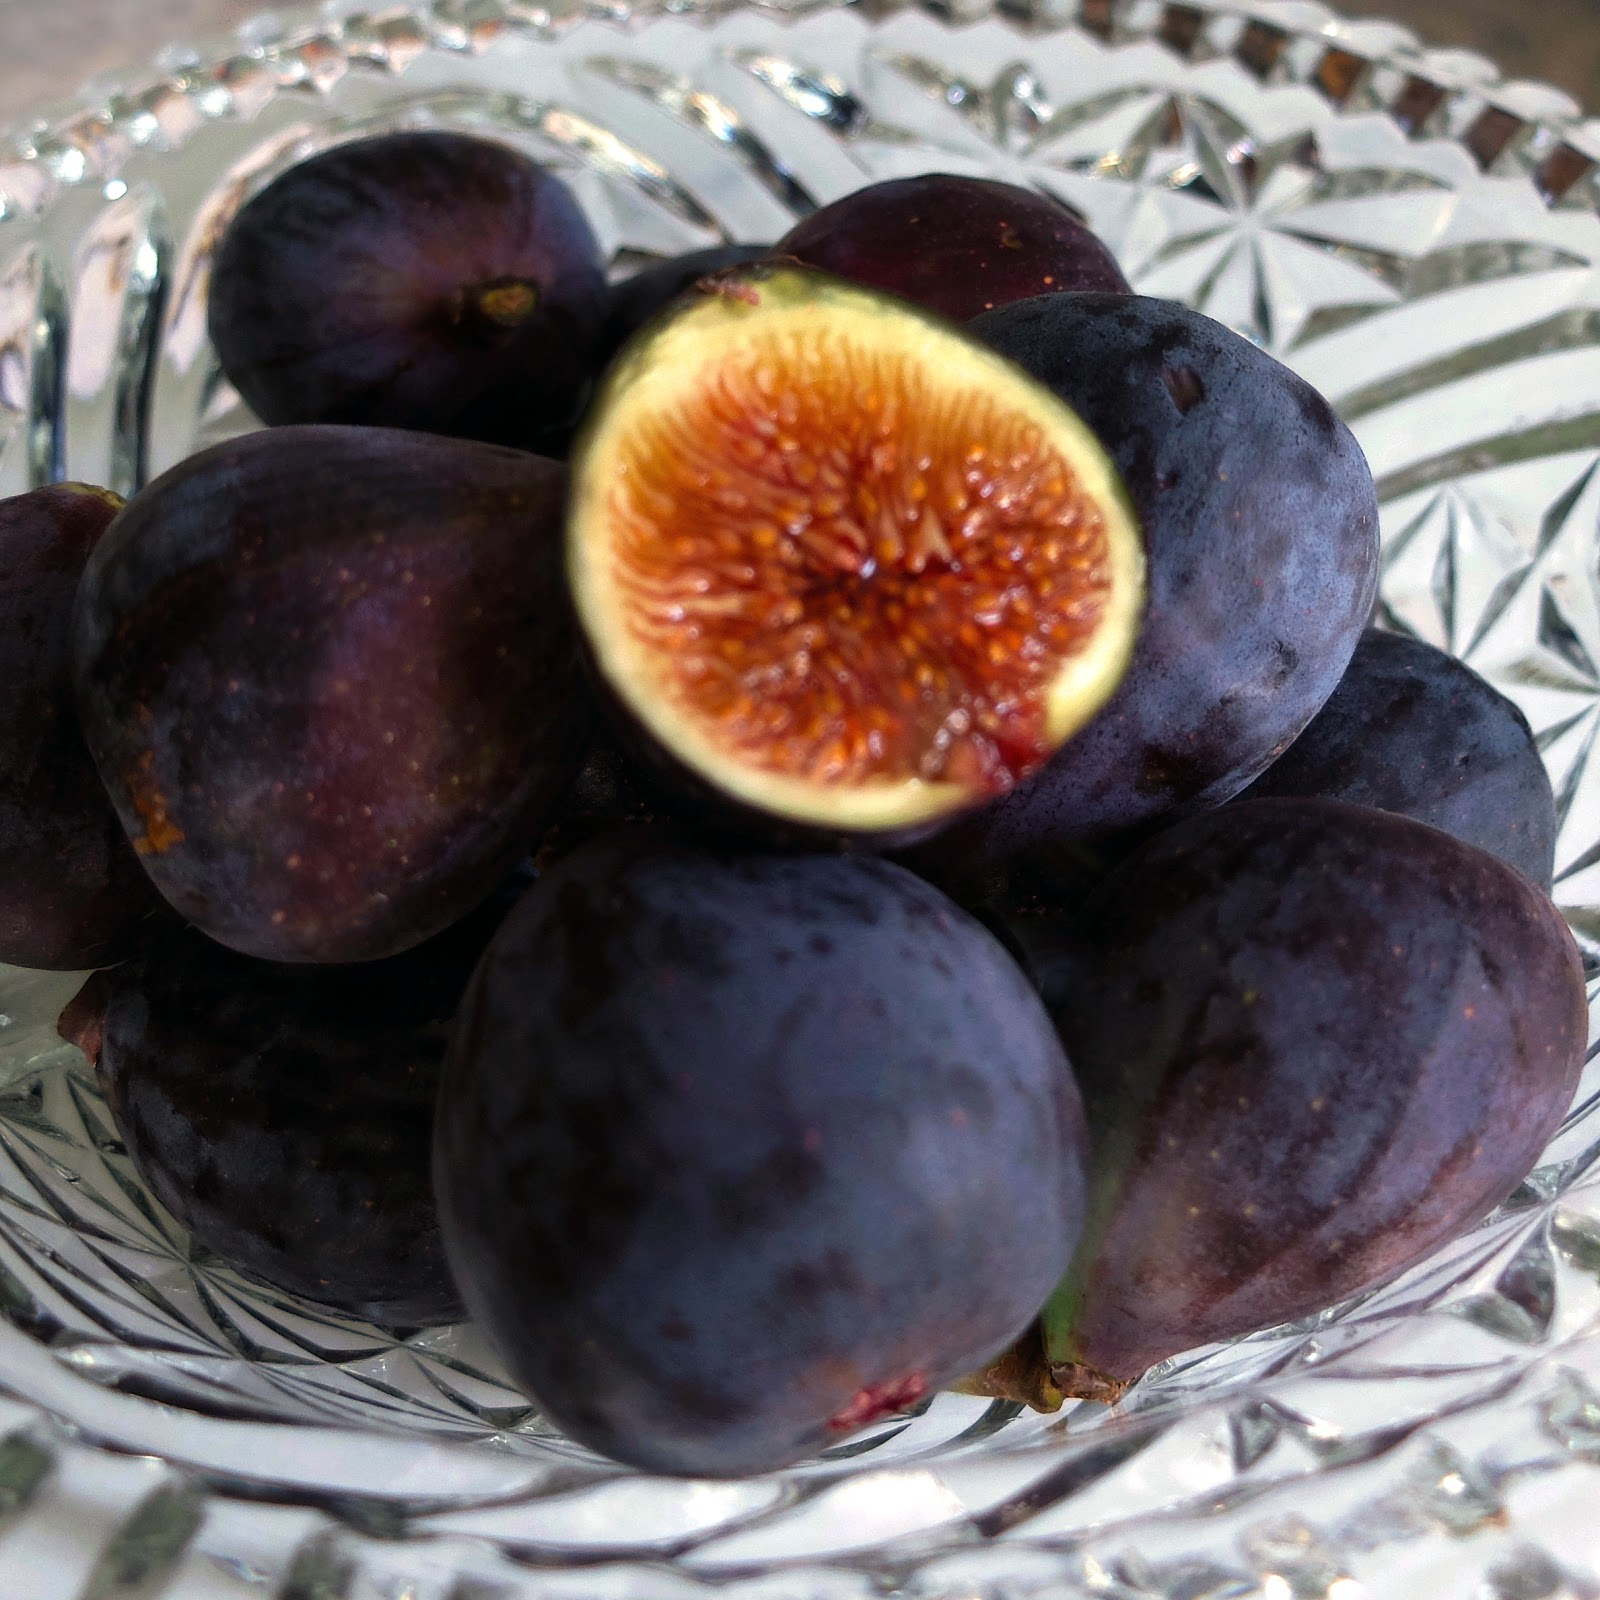 A bowl of fresh Mission figs.